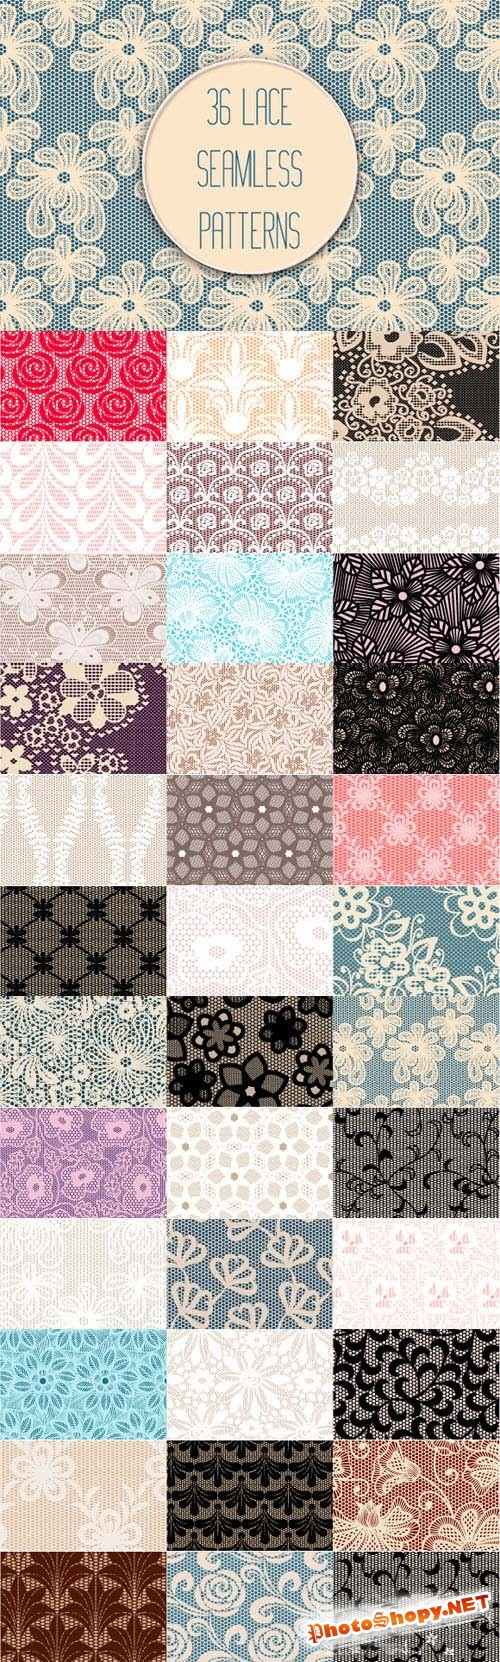 Set of 36 Lace Seamless Patterns - Creativemarket 188906